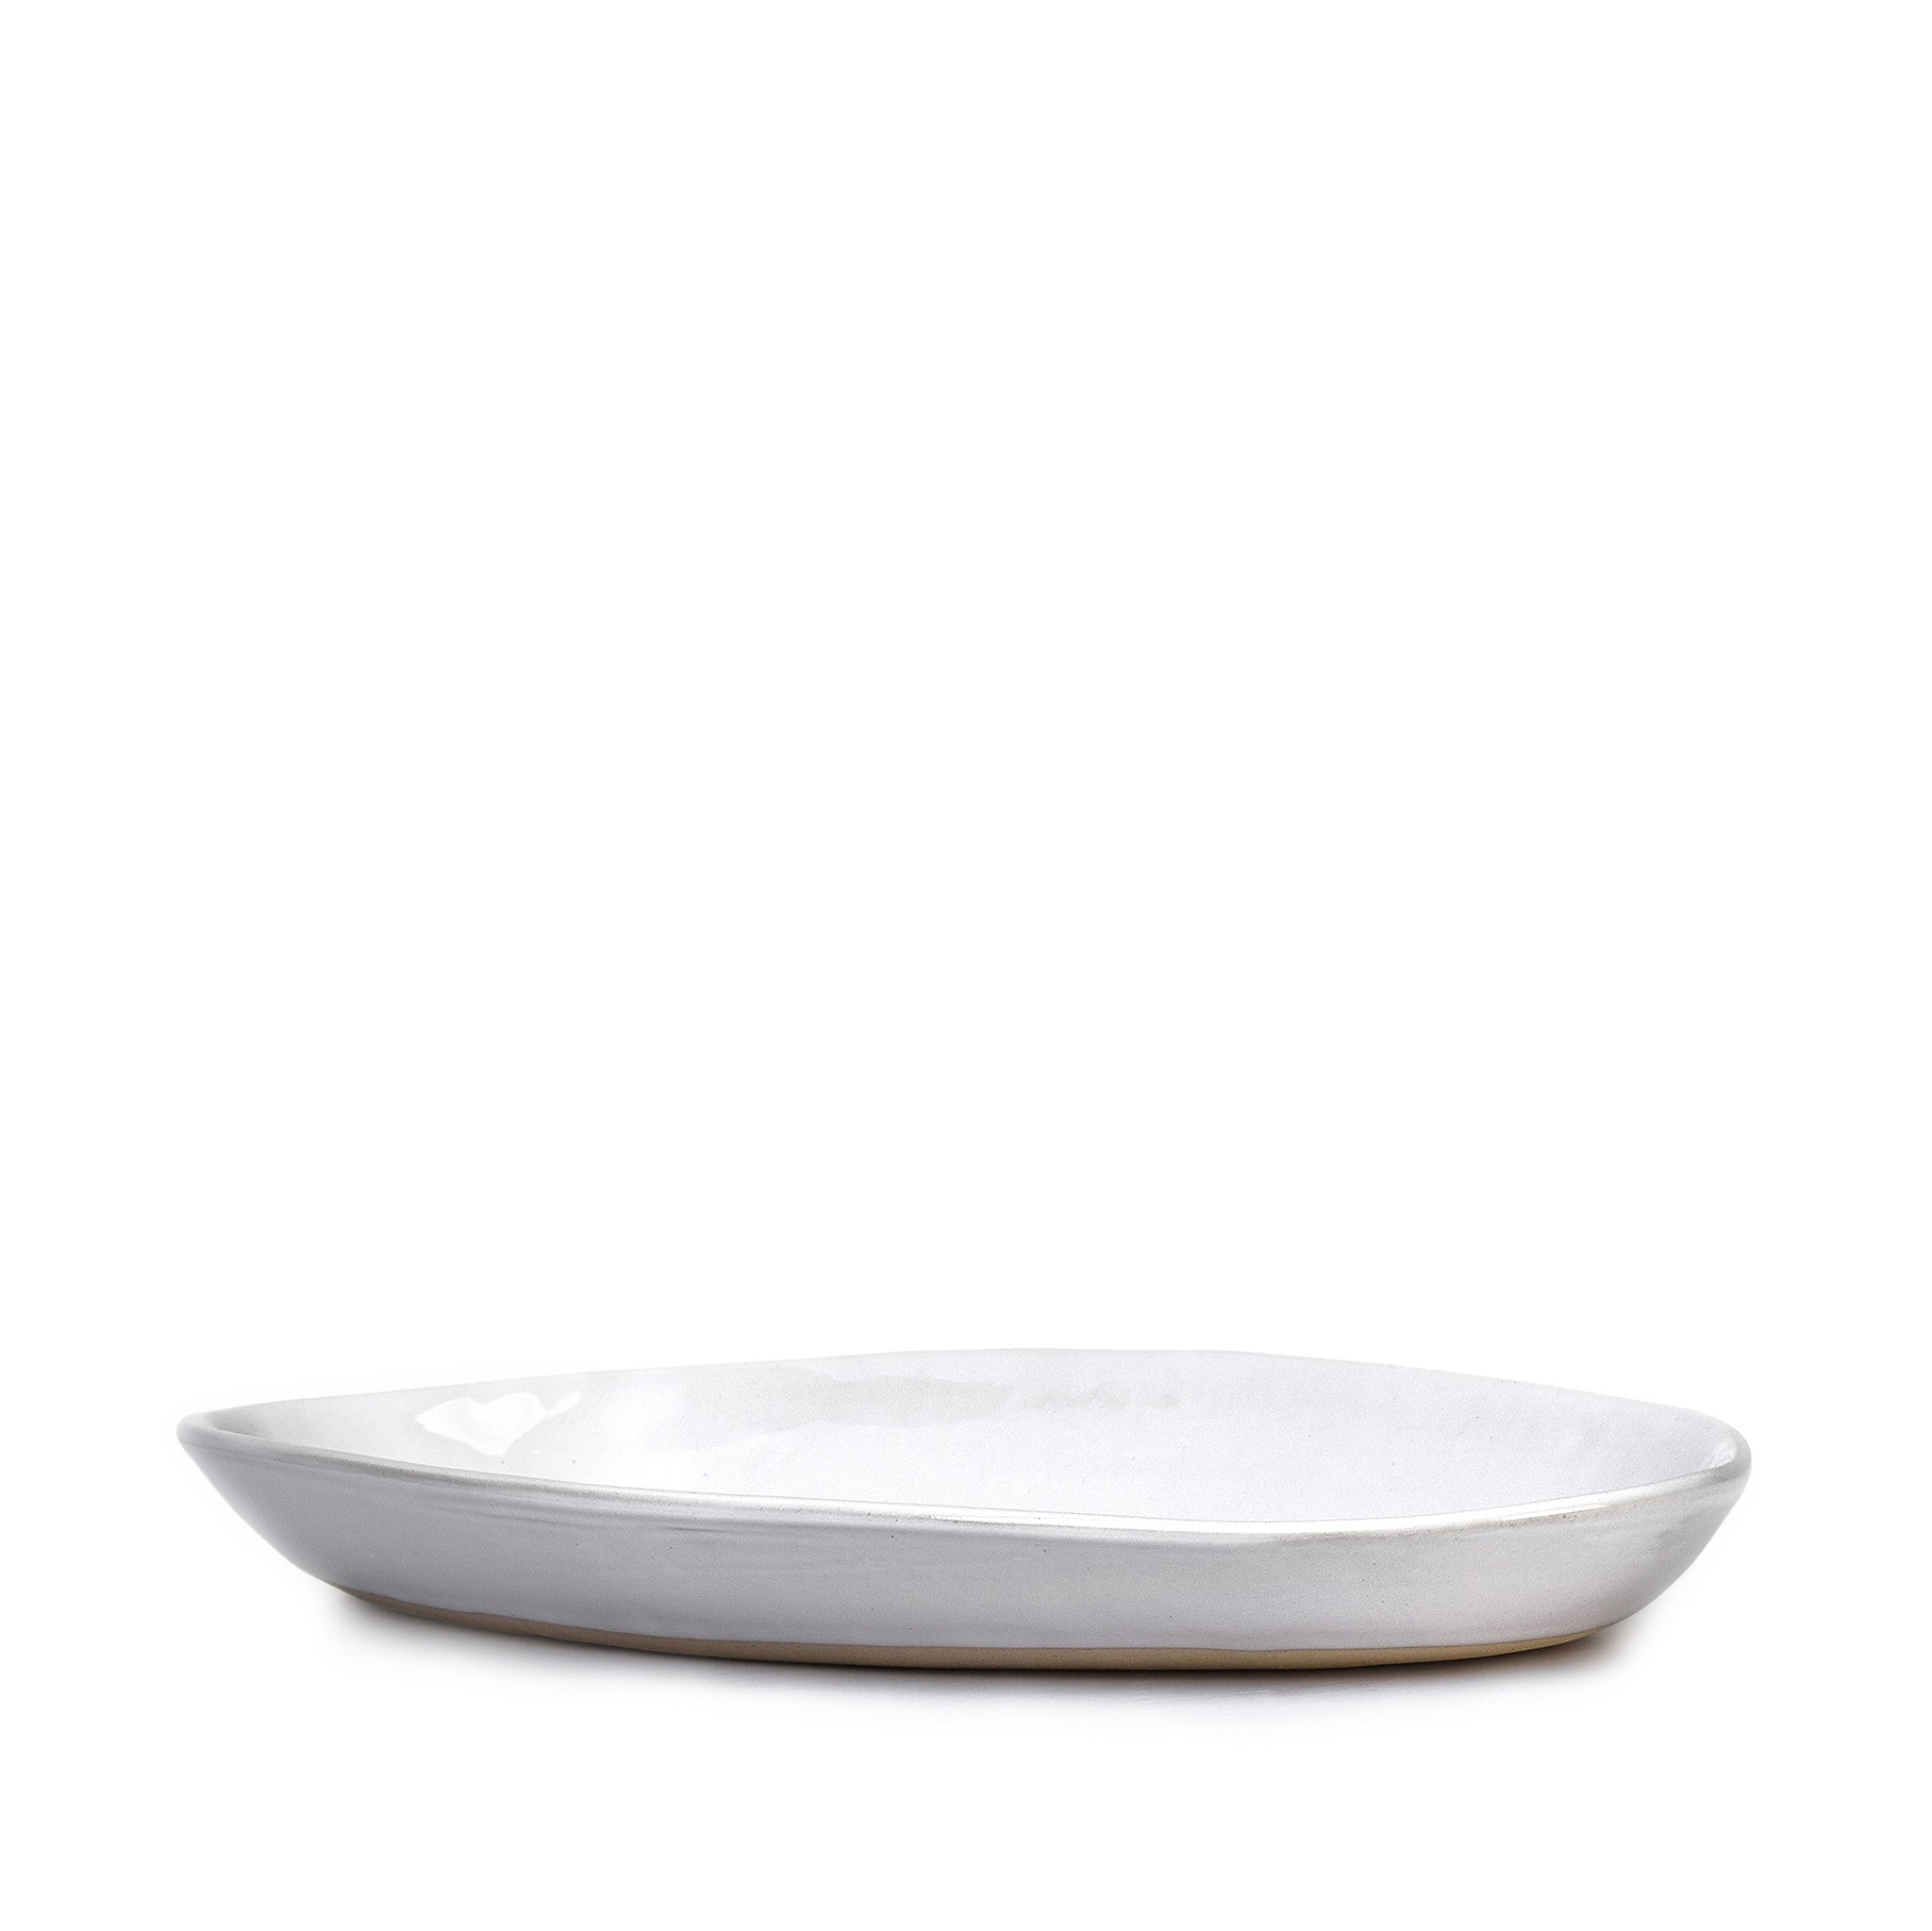 Wonki Ware Medium Bamboo Platter in White, 43cm